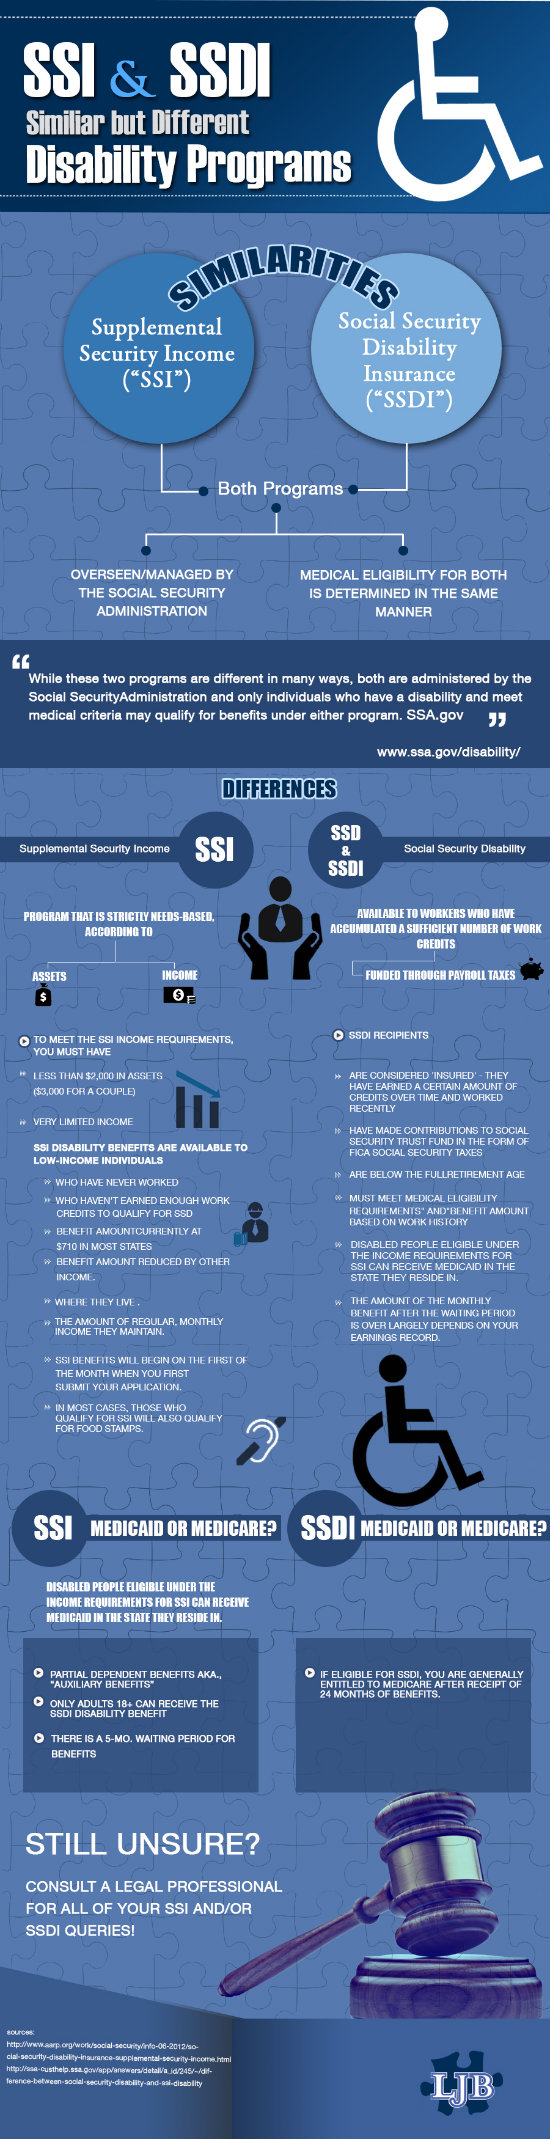 SSI & SSDI differences